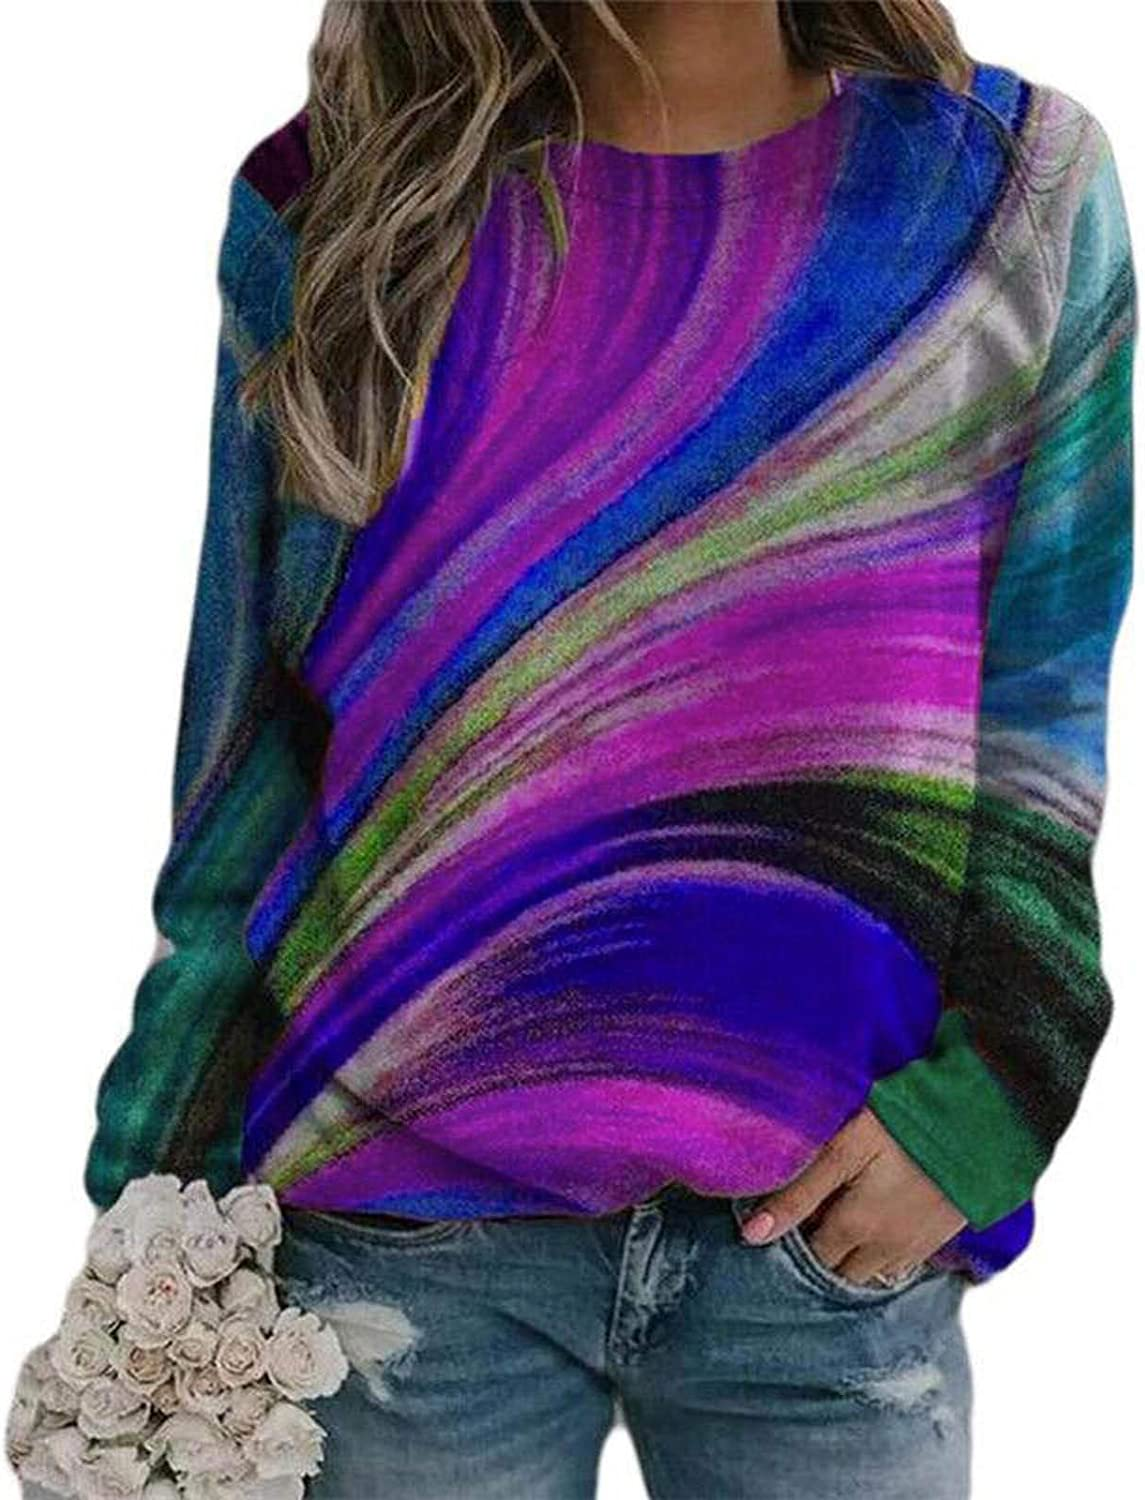 Womens Tops,Women's Long Sleeve Round Neck Casual Colorful Print T-Shirt Blouse Sweatshirt Pullover Lightweight Top